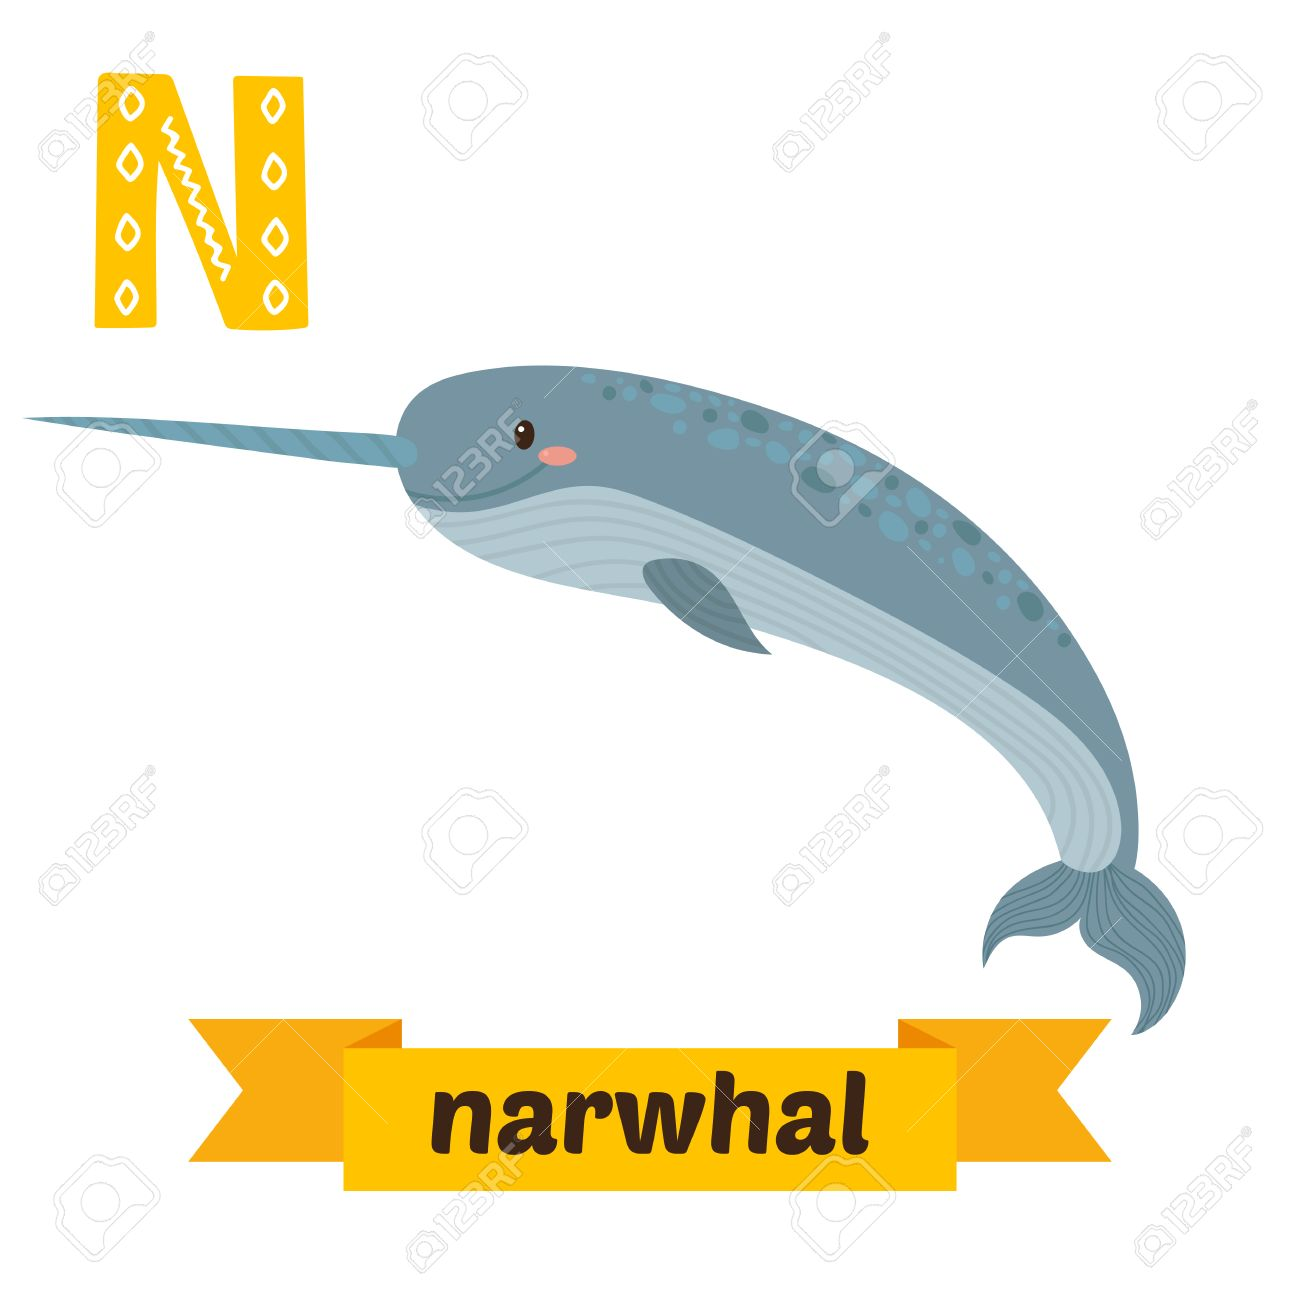 Image of: Cute Narwhal Vector Illustration Narwhal Letter Cute Children Animal Alphabet In Vector Funny Cartoon Animals 123rfcom Narwhal Letter Cute Children Animal Alphabet In Vector Funny